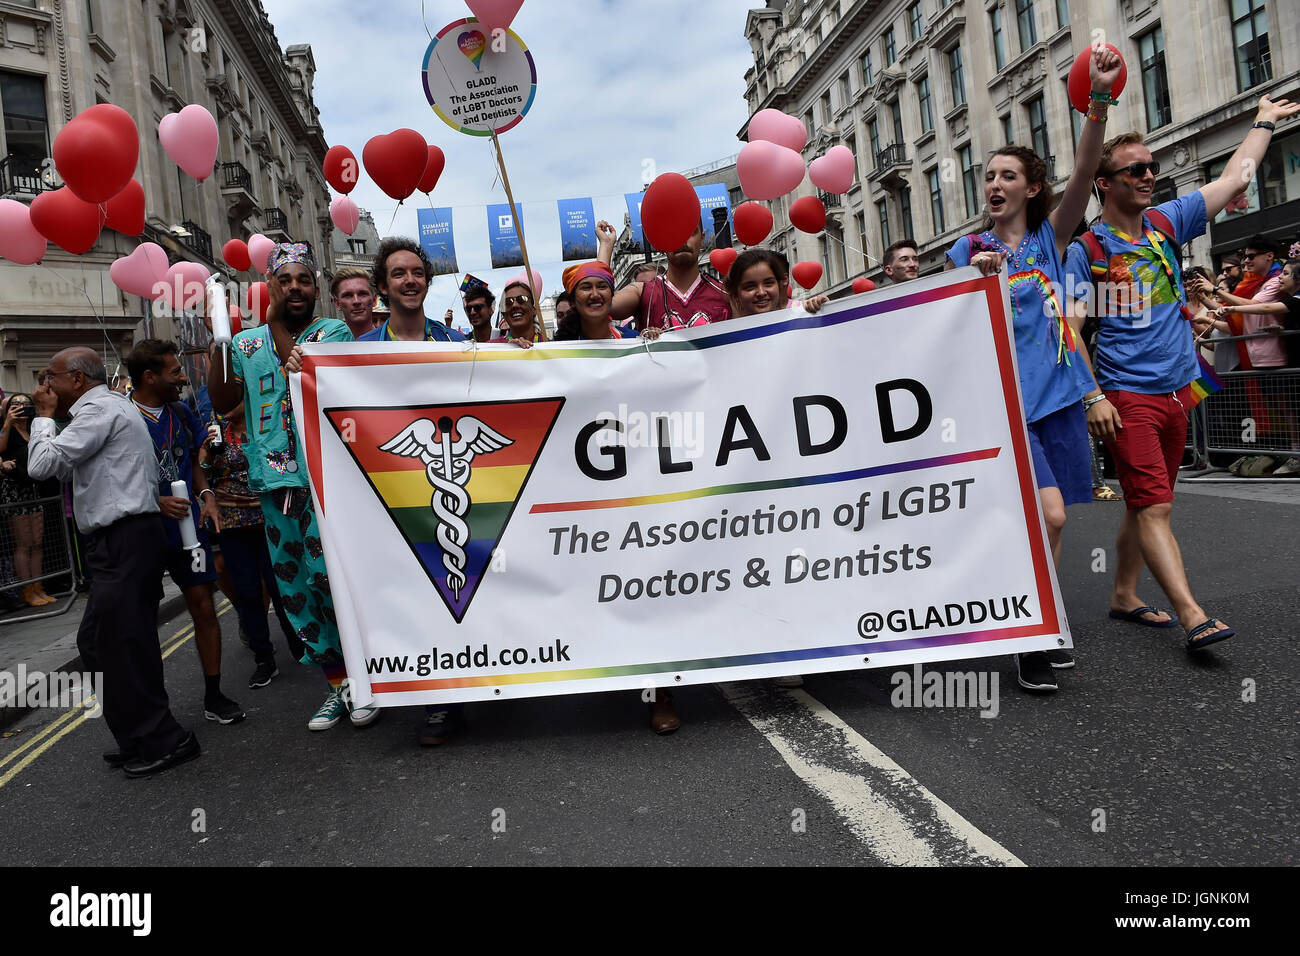 London, UK. 08th July, 2017. The GLADD joined the Pride In London on Saturday. Photo : Taka G Wu Credit: Taka Wu/Alamy - Stock Image